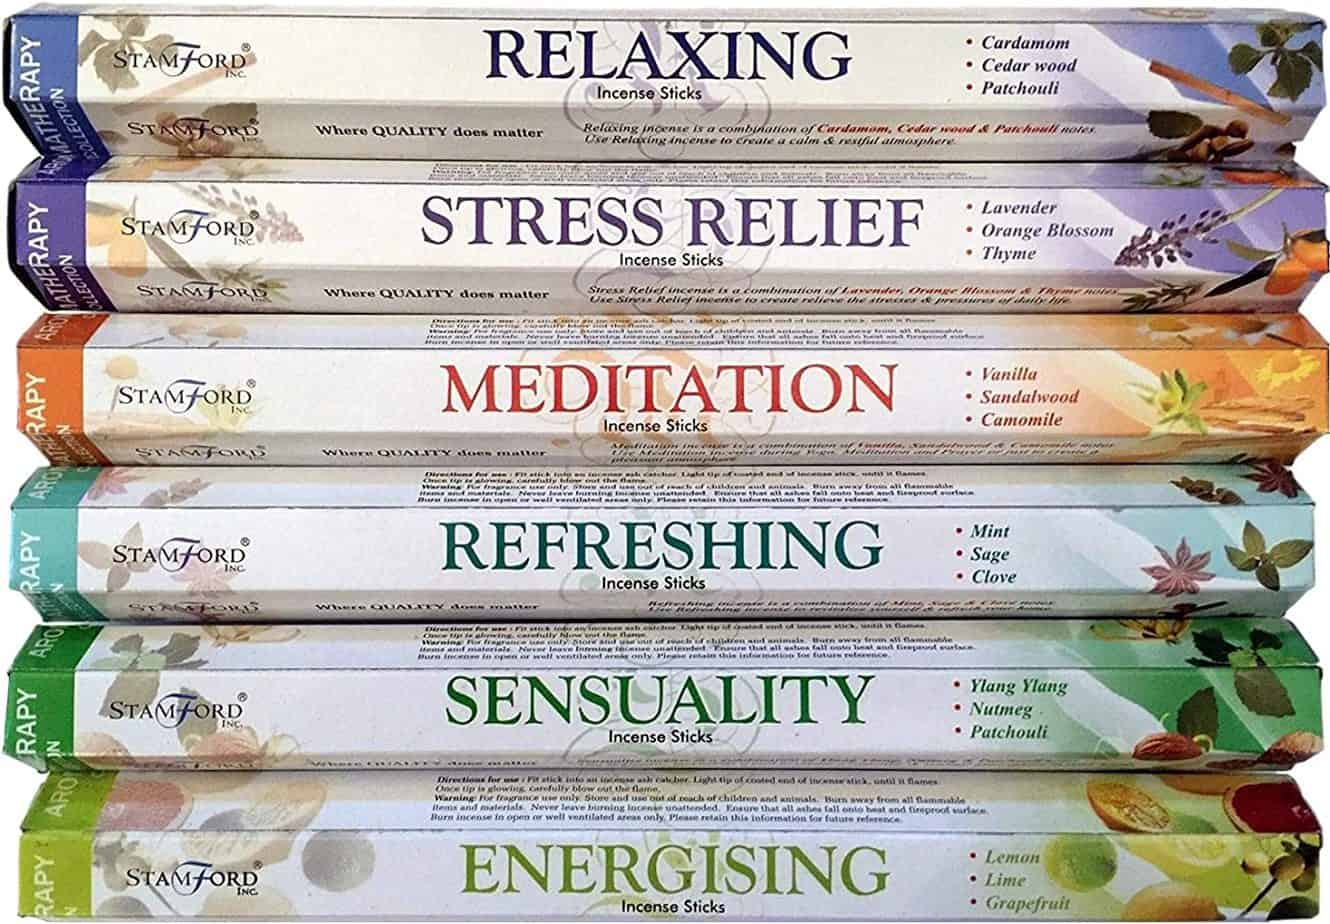 Aromatherapy Hex Range Incense Sticks